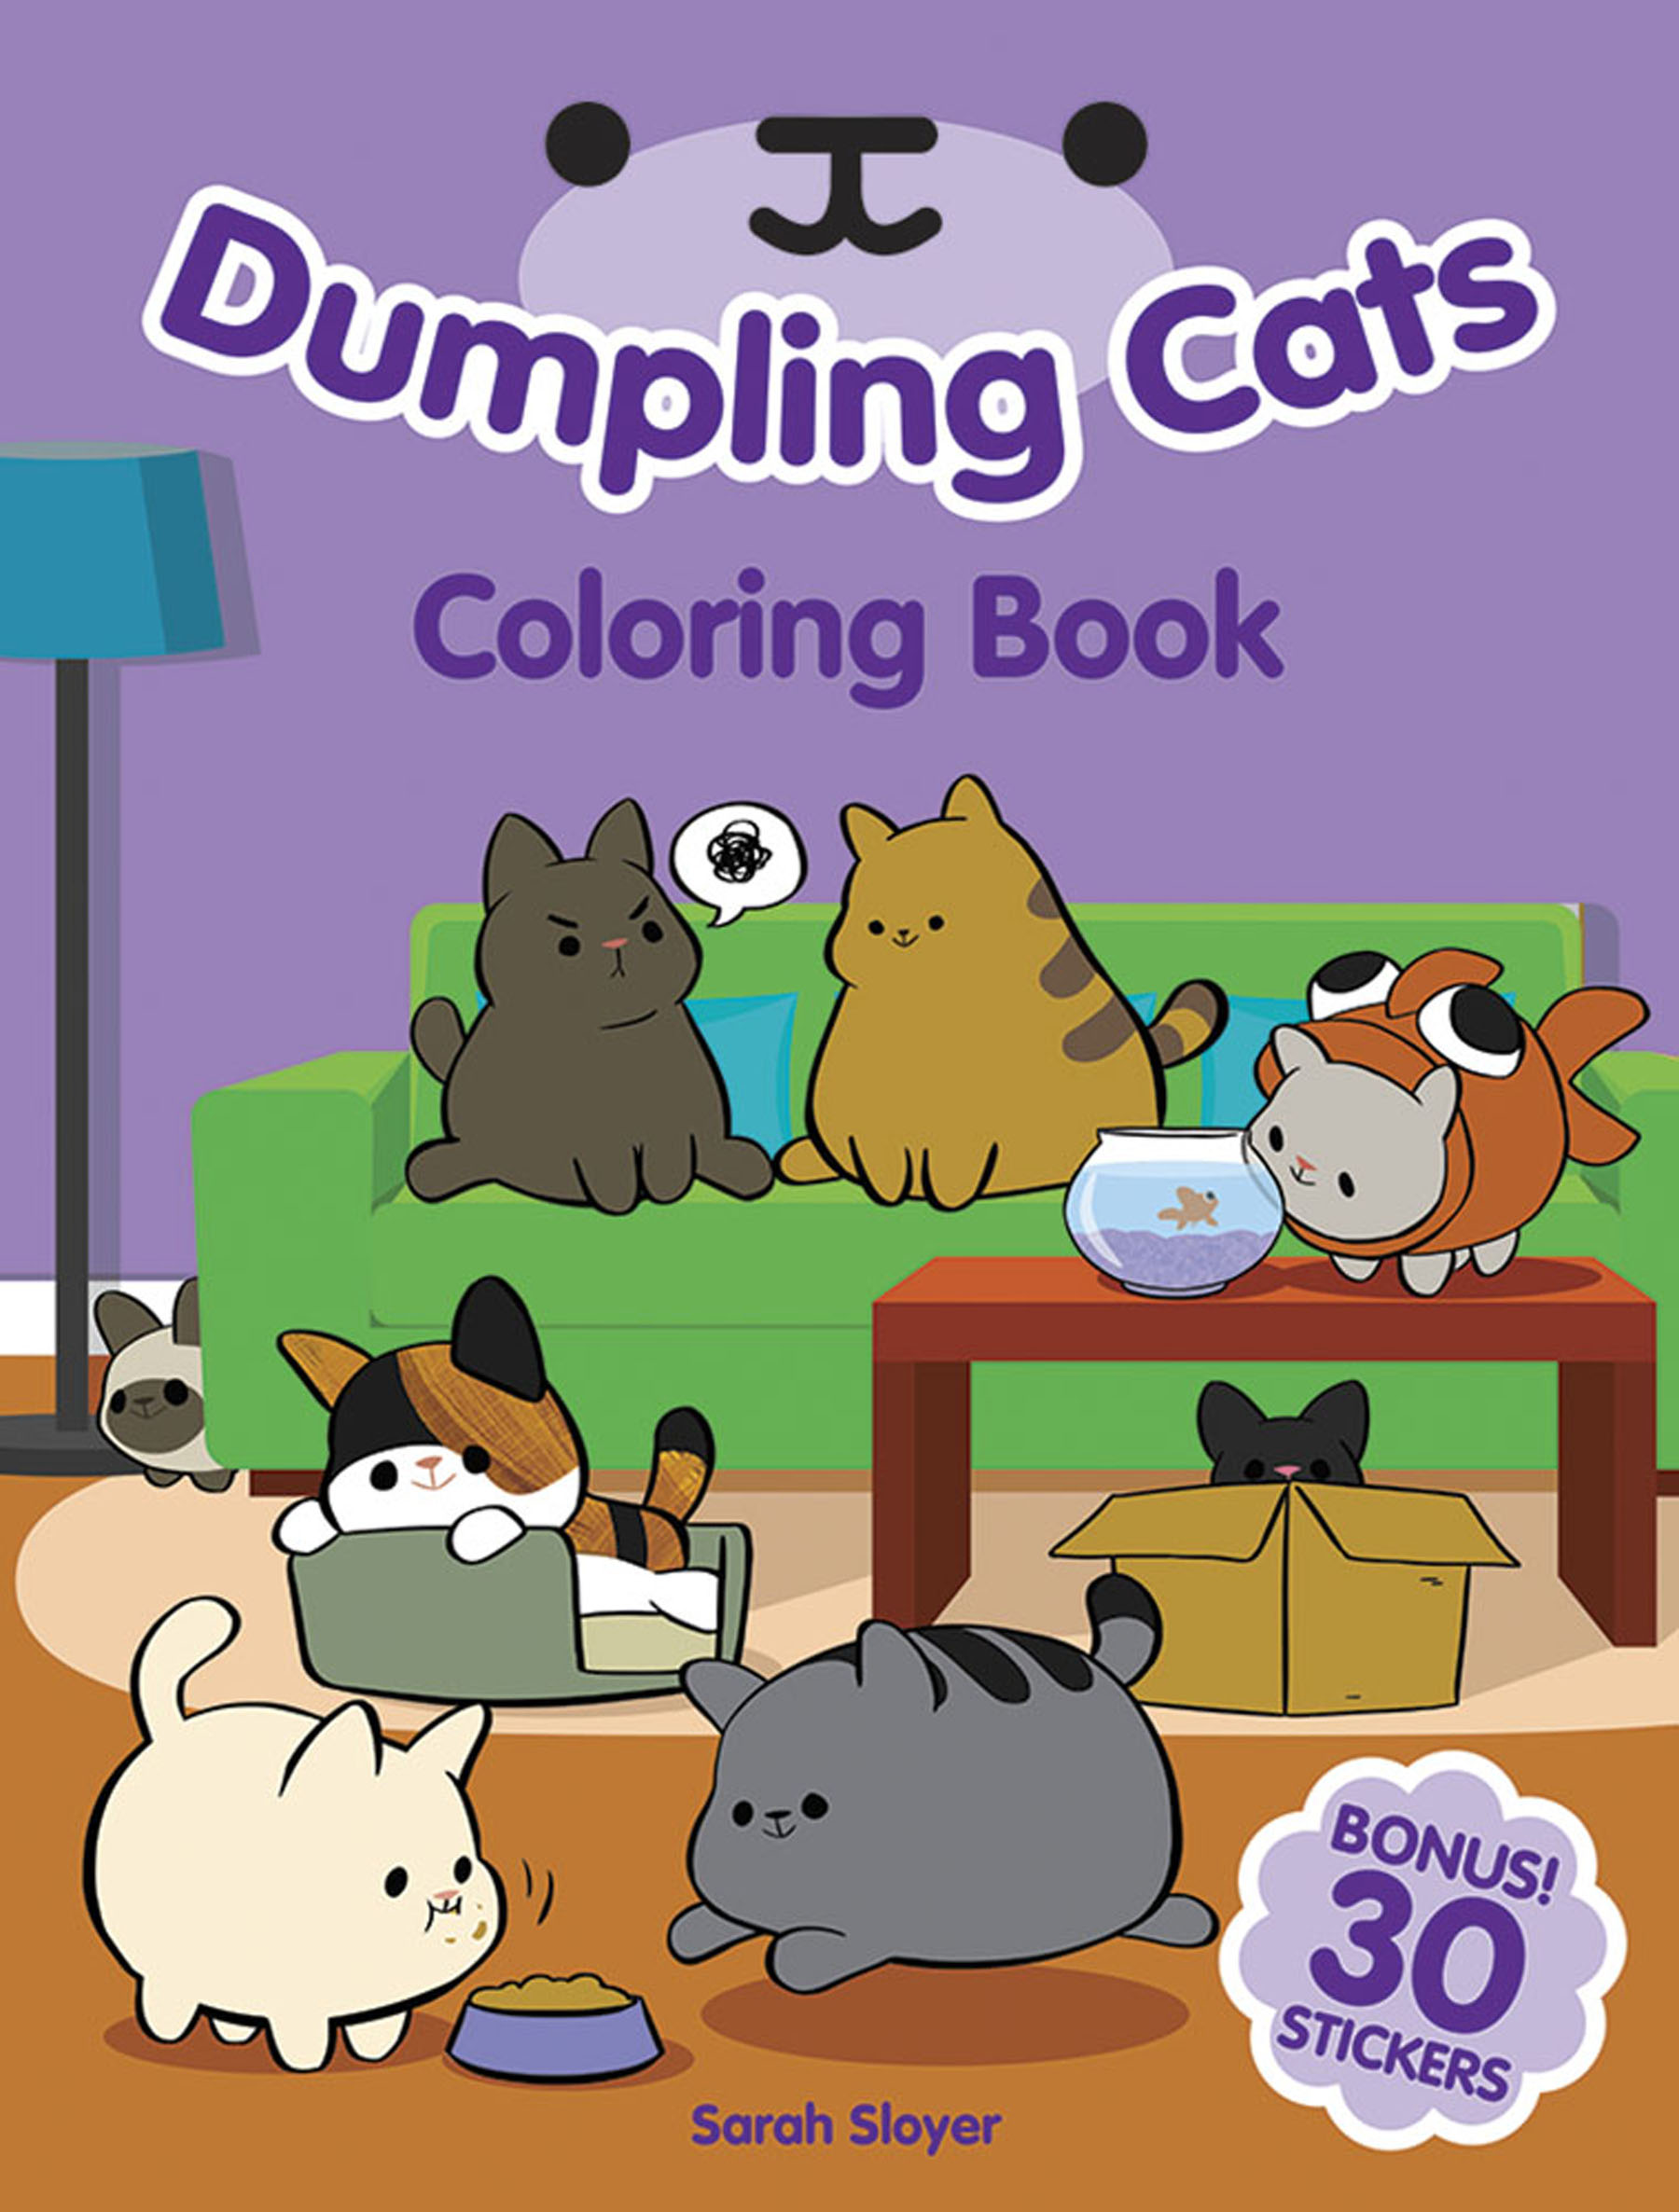 Dumpling Cats Coloring Book with Stickers